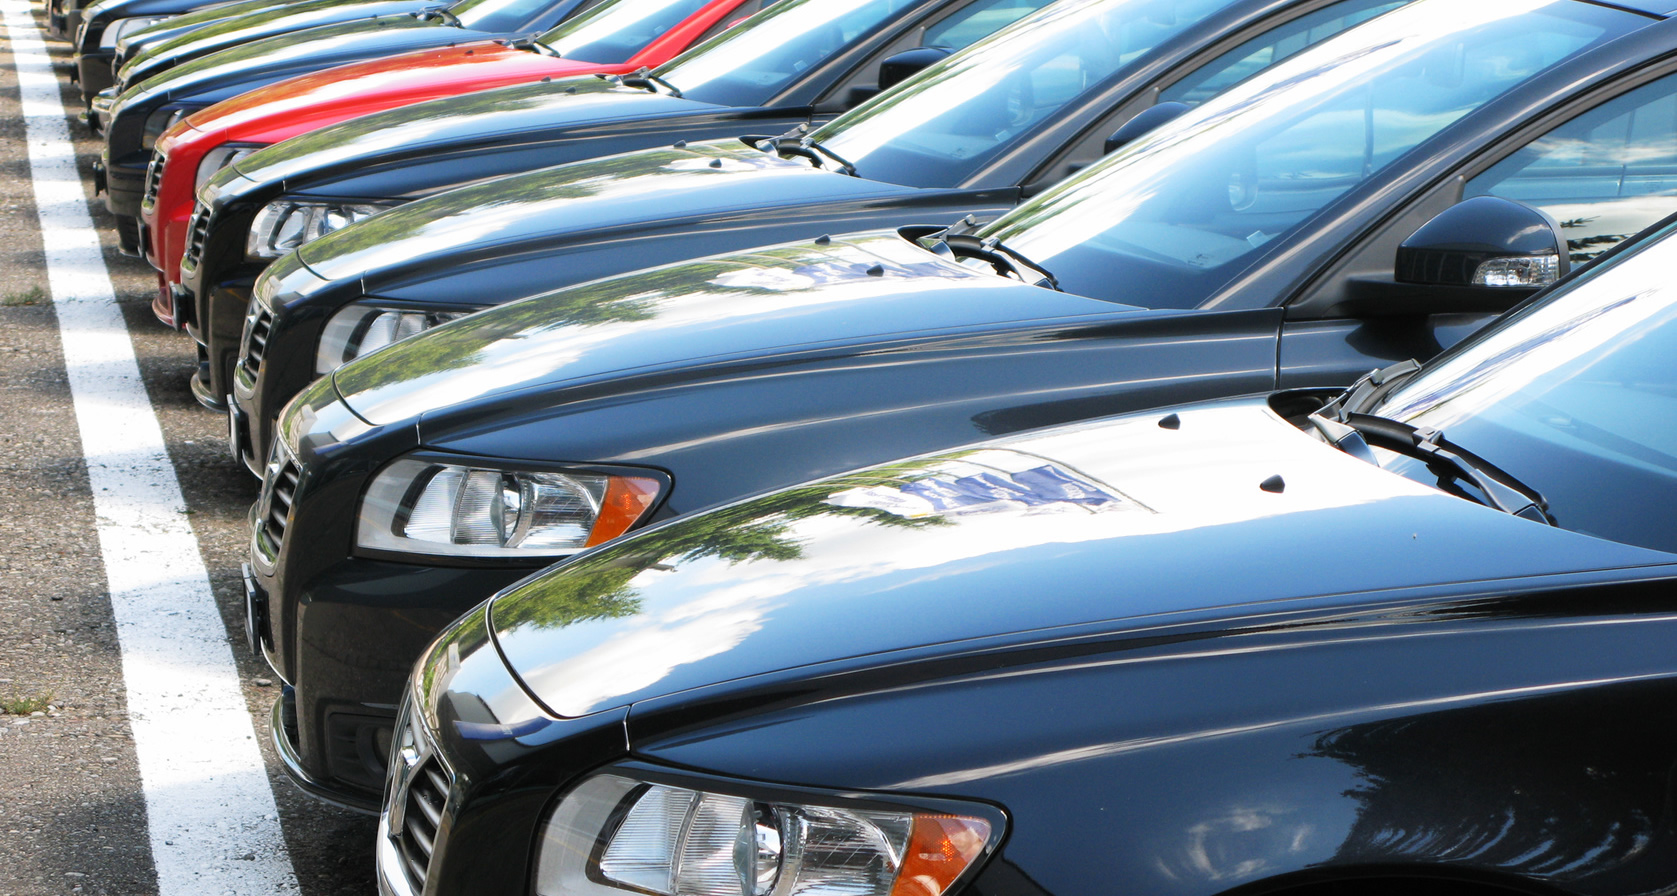 Tips for Selling Your Used Vehicle